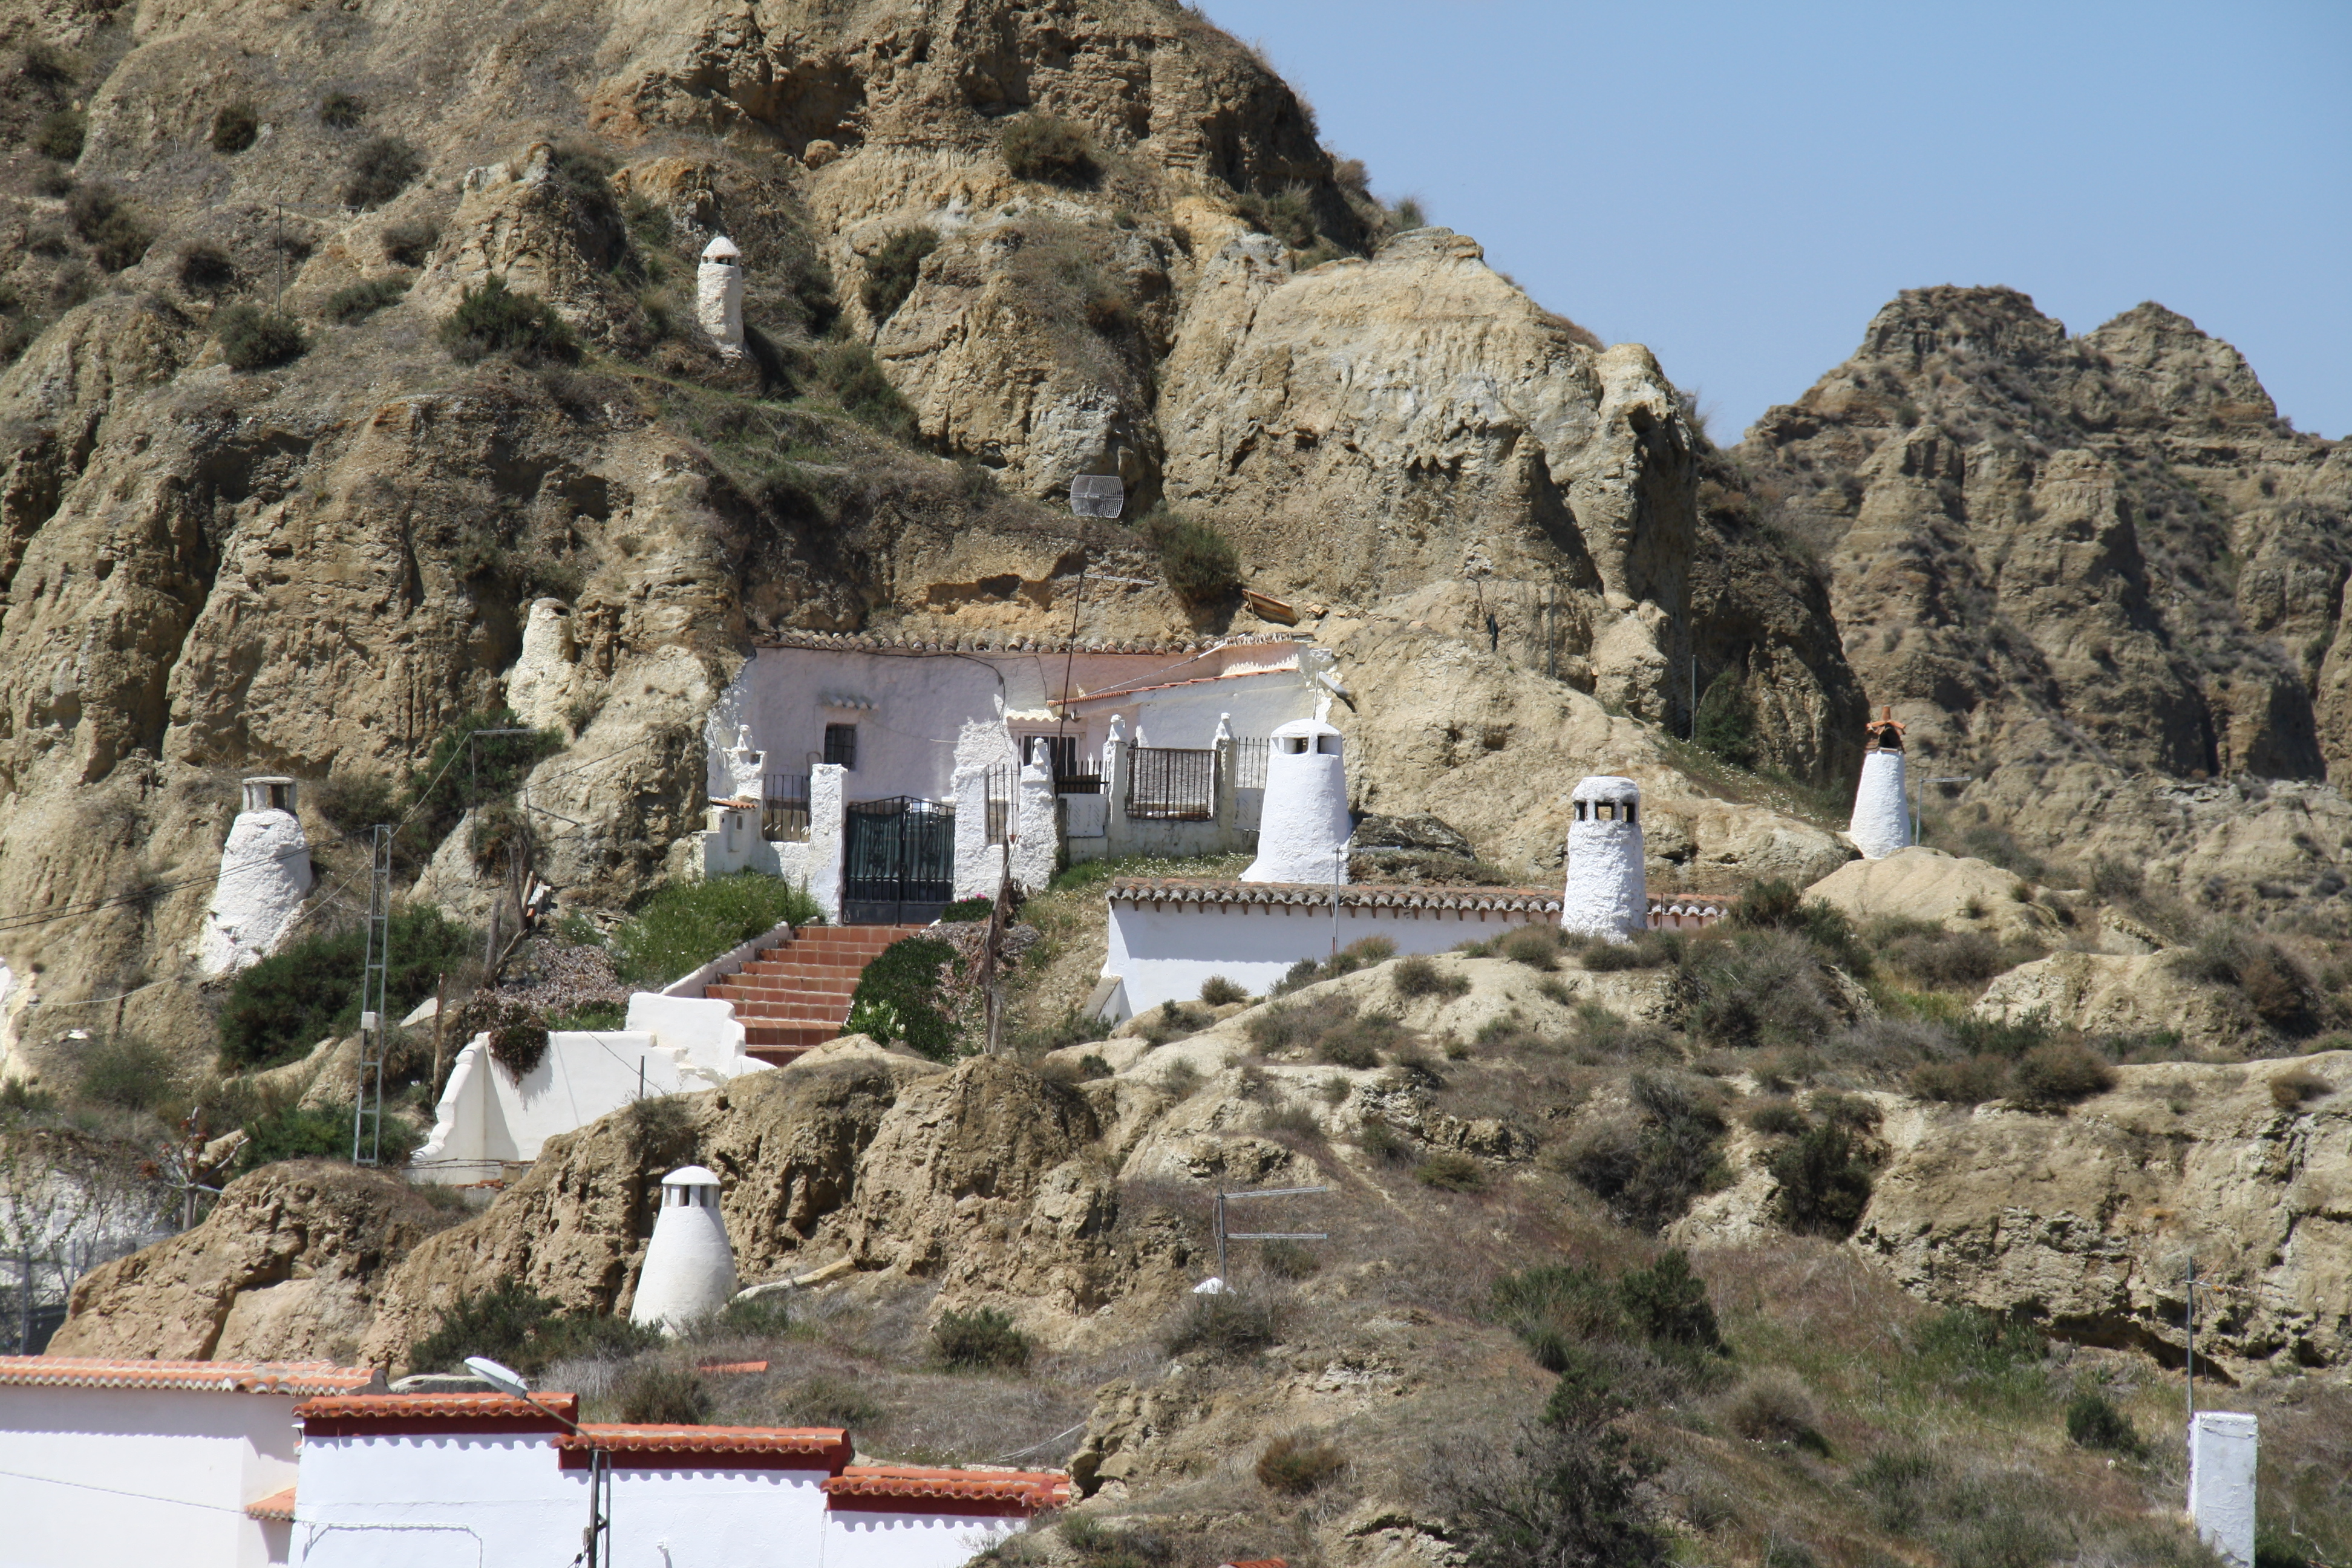 The cave dwellings of Guadix, Spain